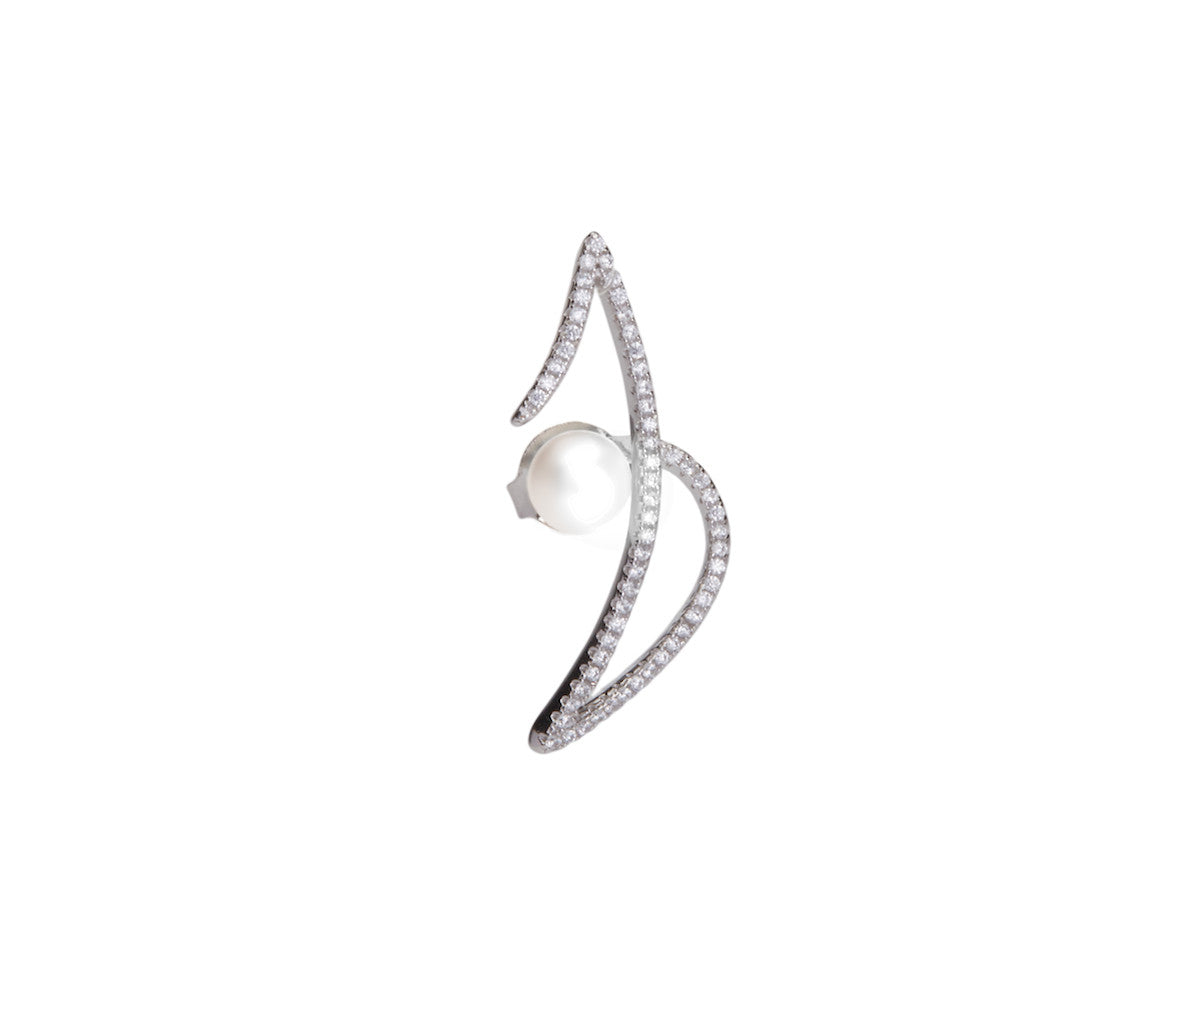 Silver Z-Shaped Stud Earrings with a Pearl